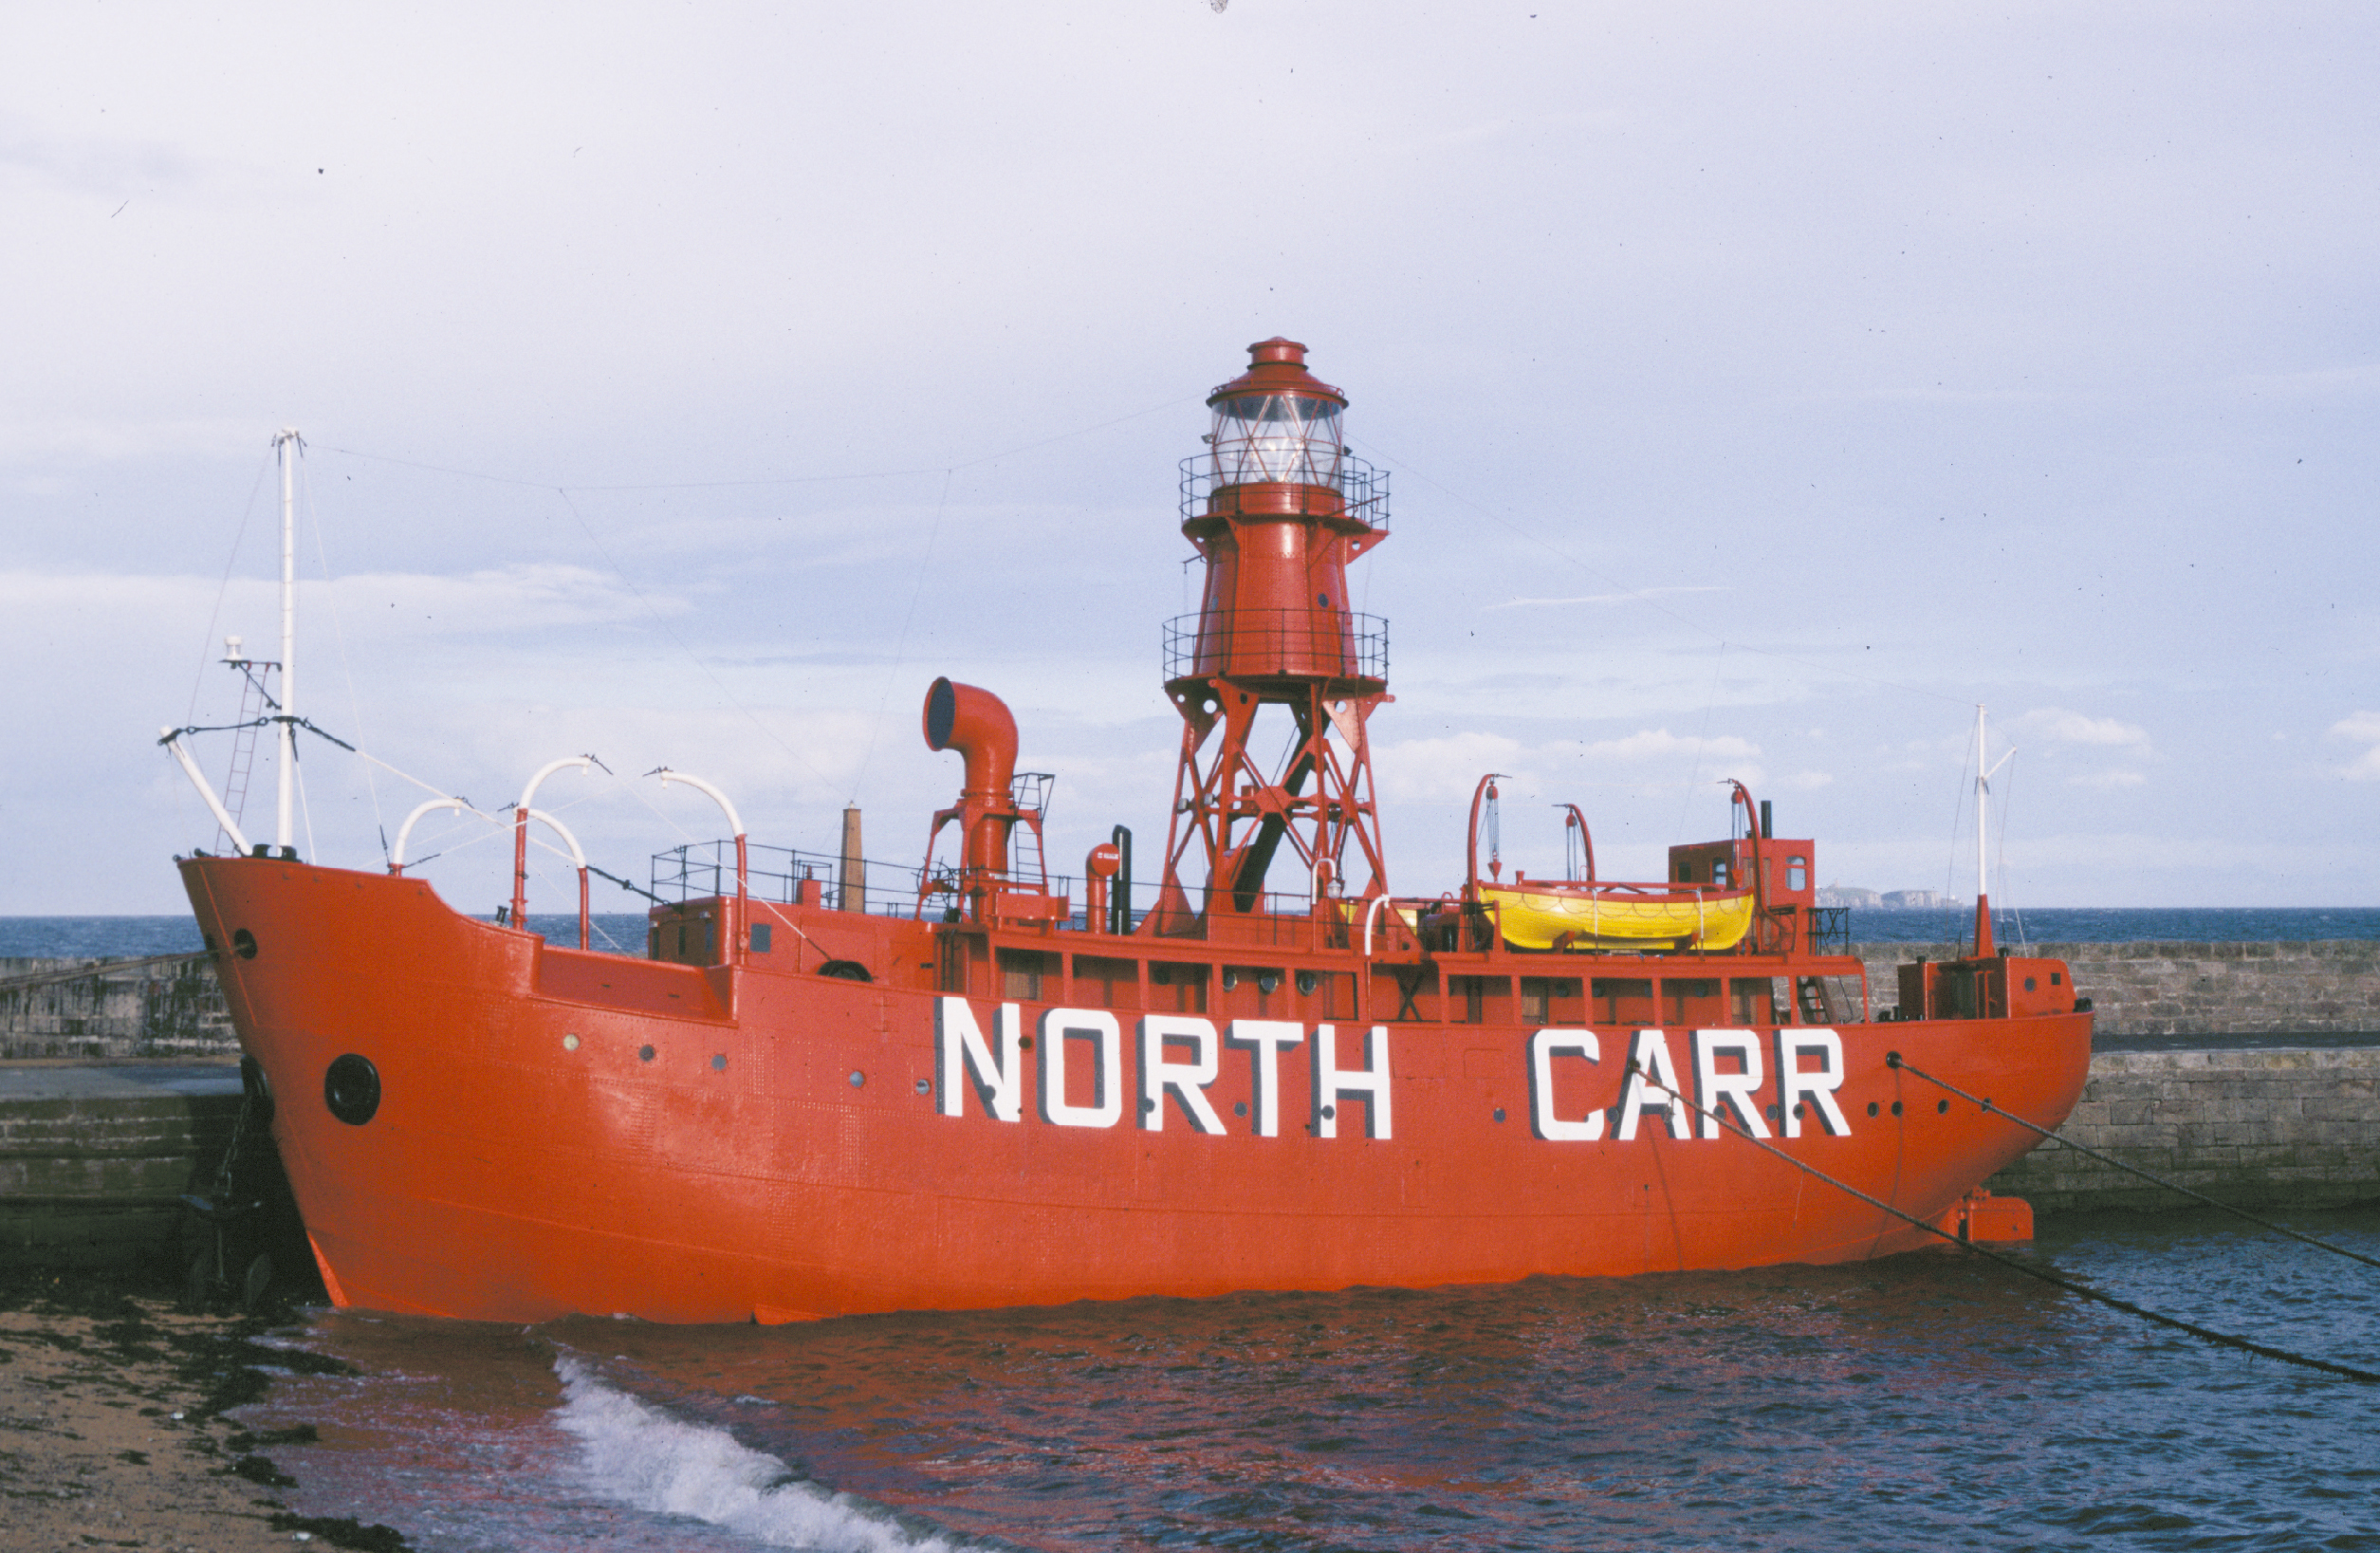 North_carr_light_ship_1988